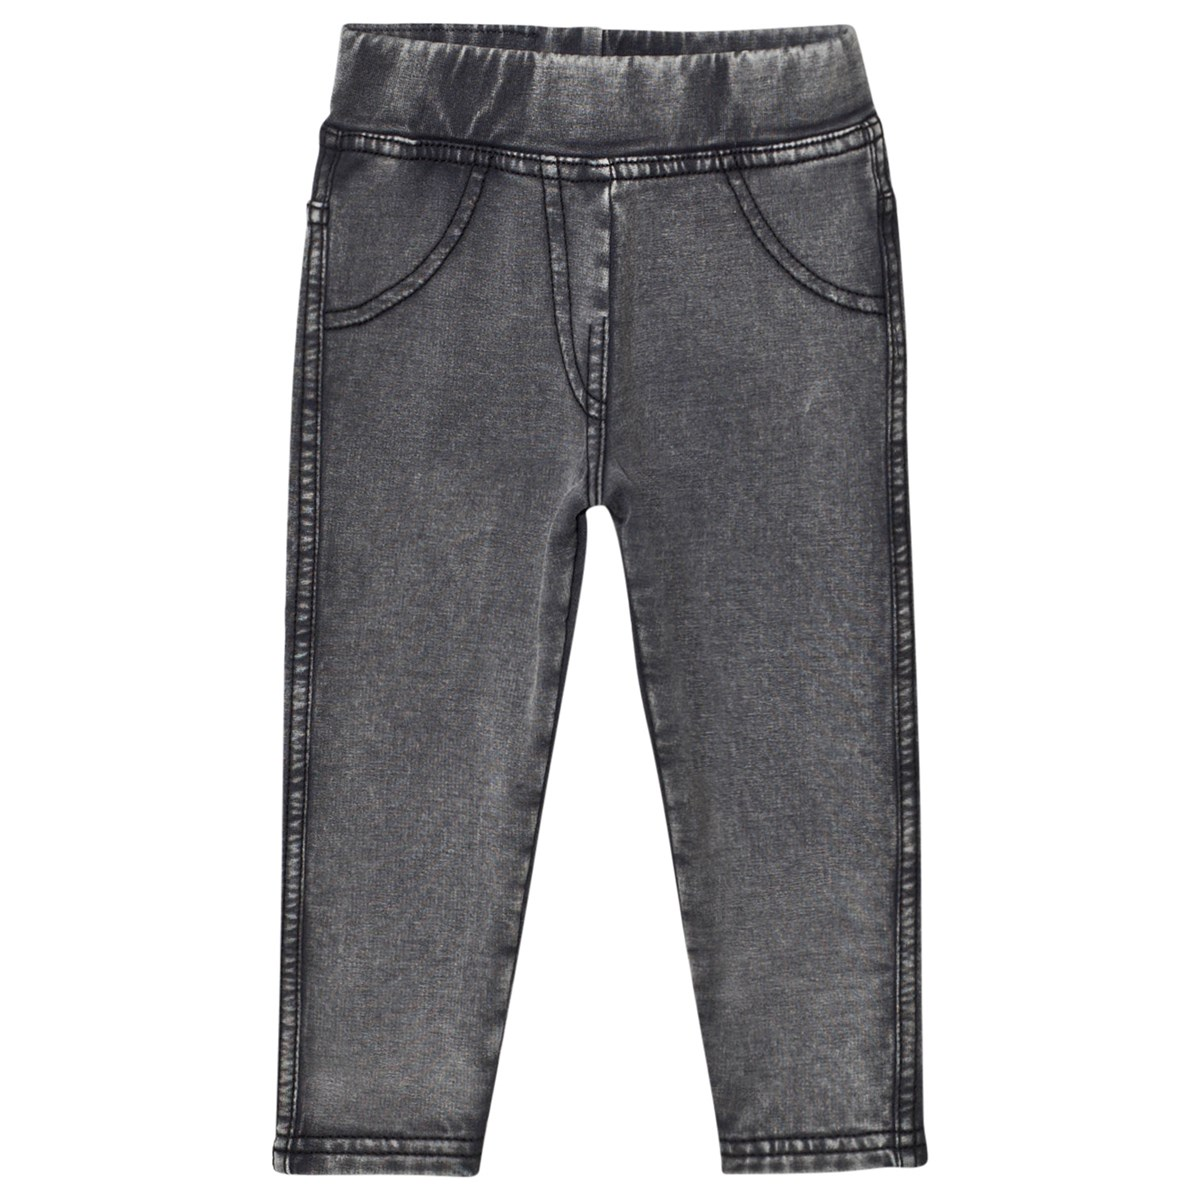 814113b6 Find every shop in the world selling dark denim jeans at PricePi.com